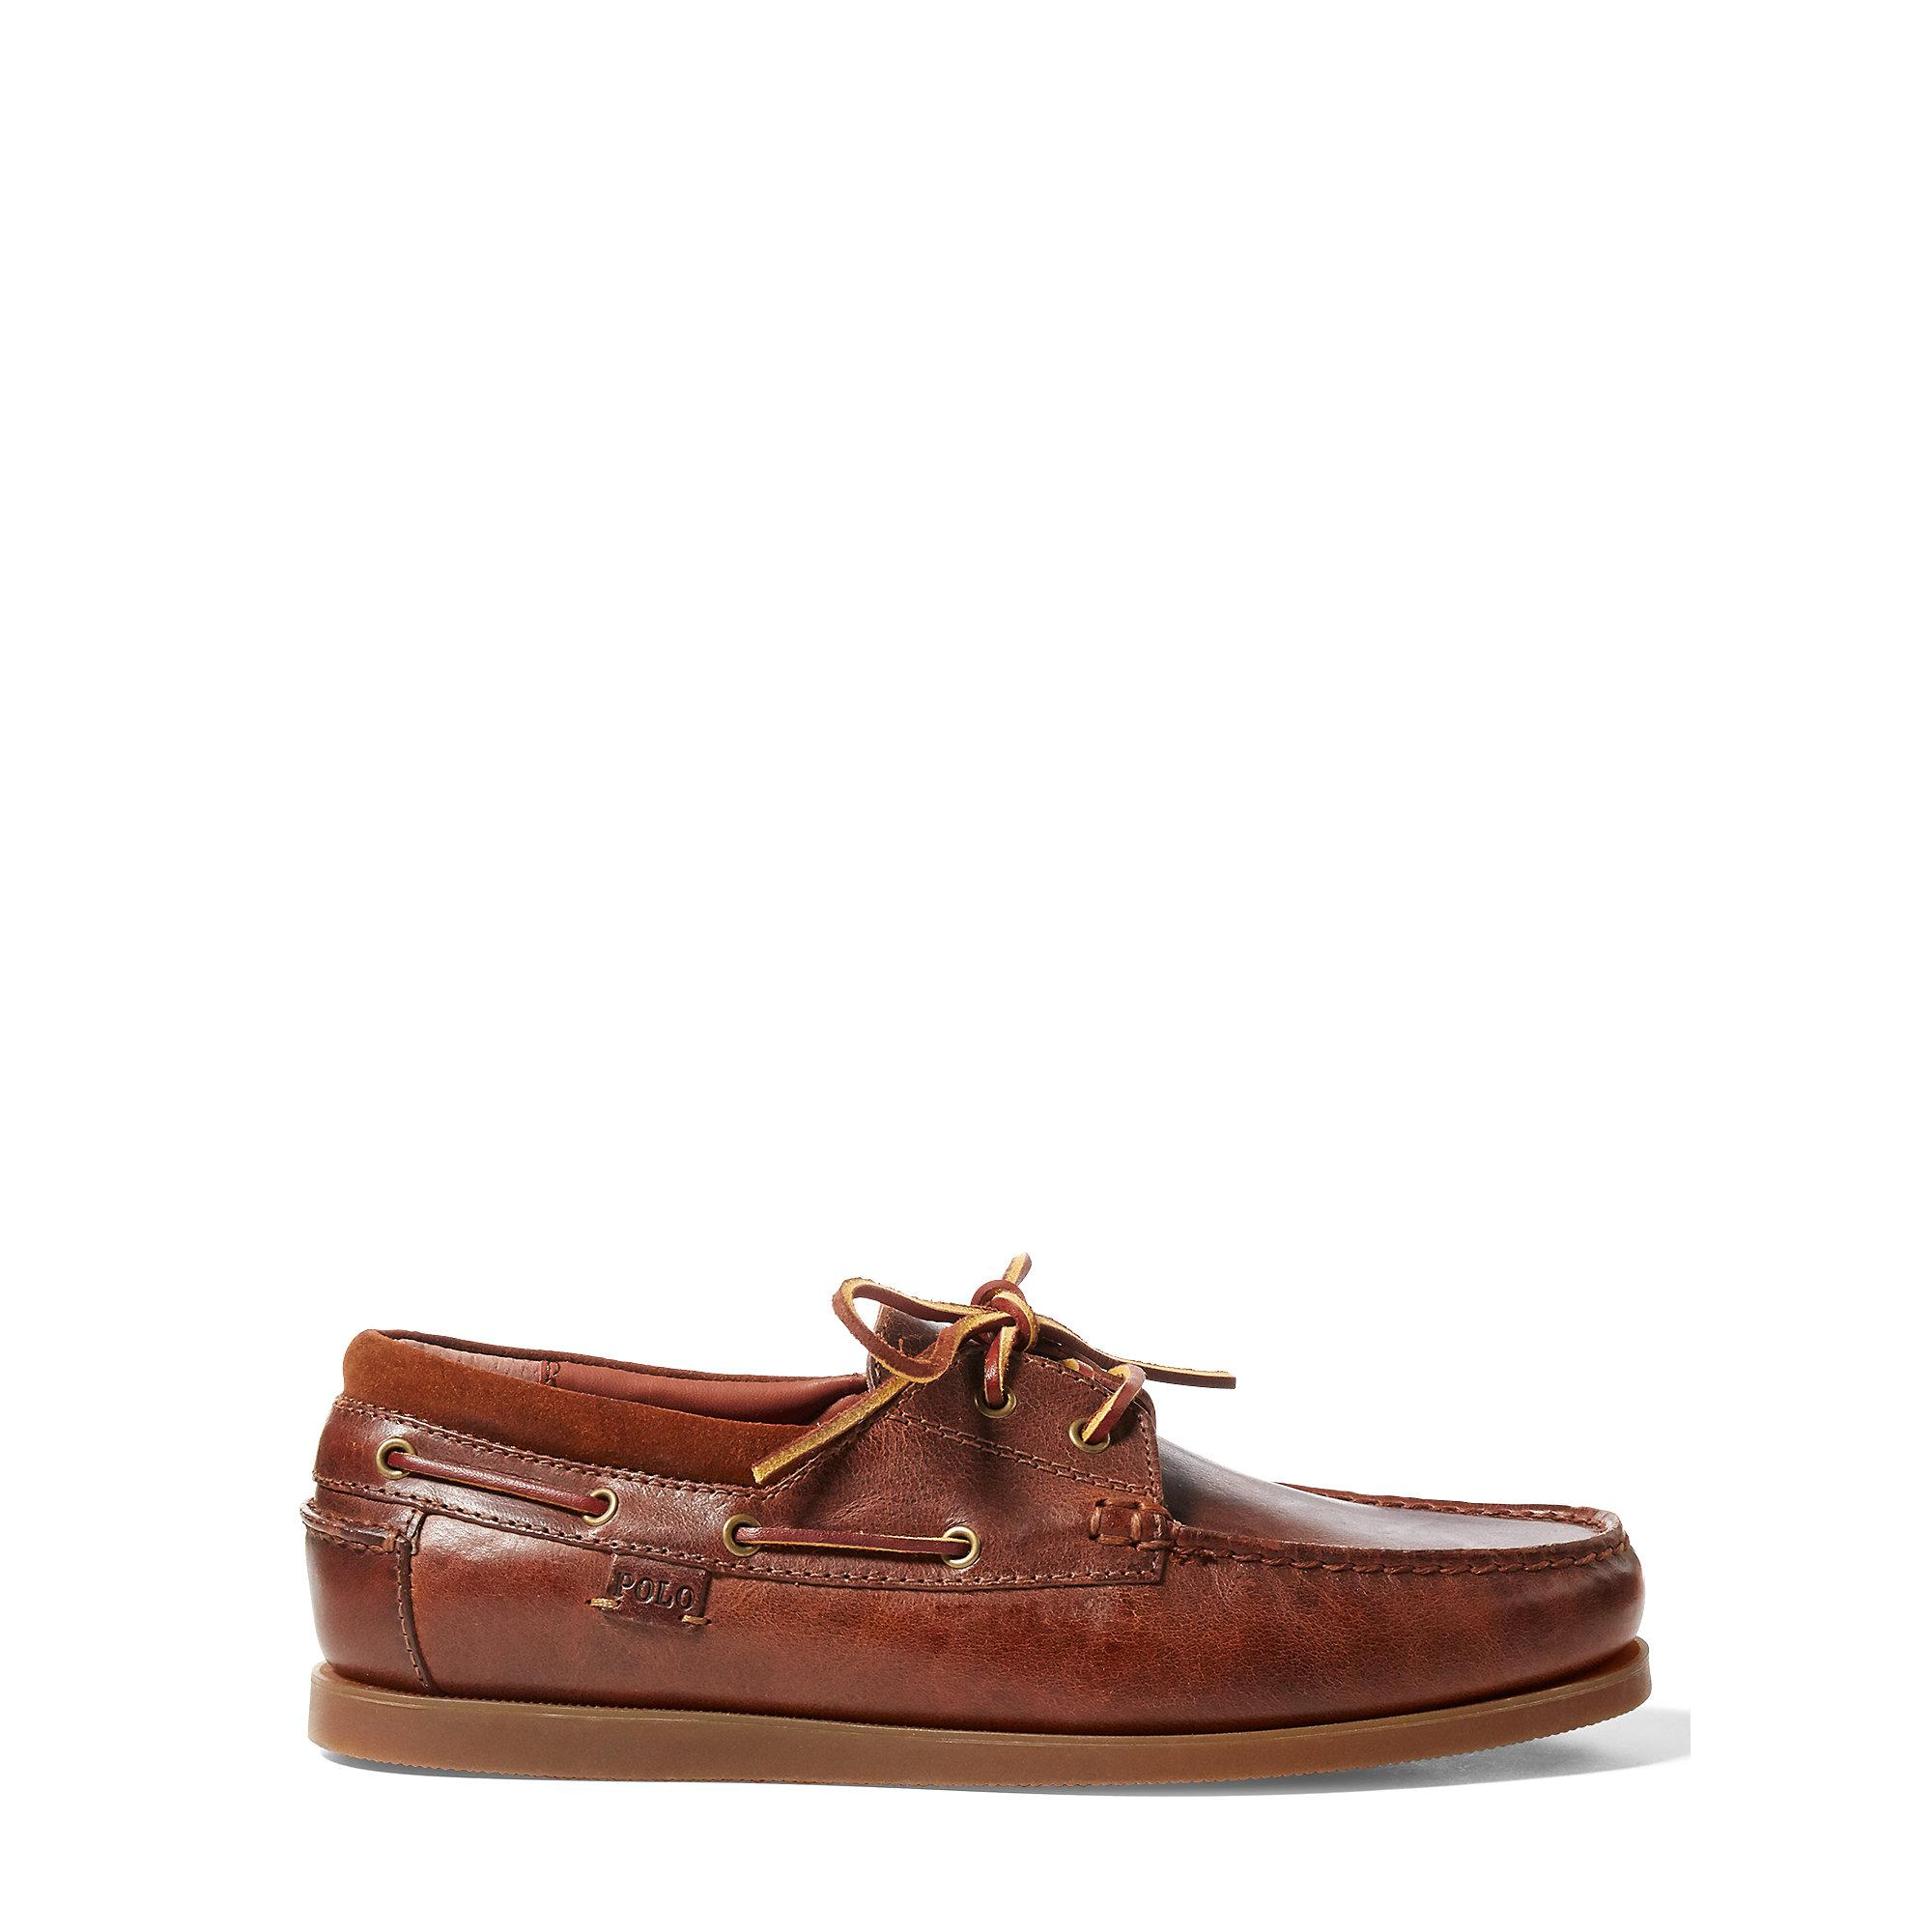 Ralph Lauren Dayne Leather Boat Shoe